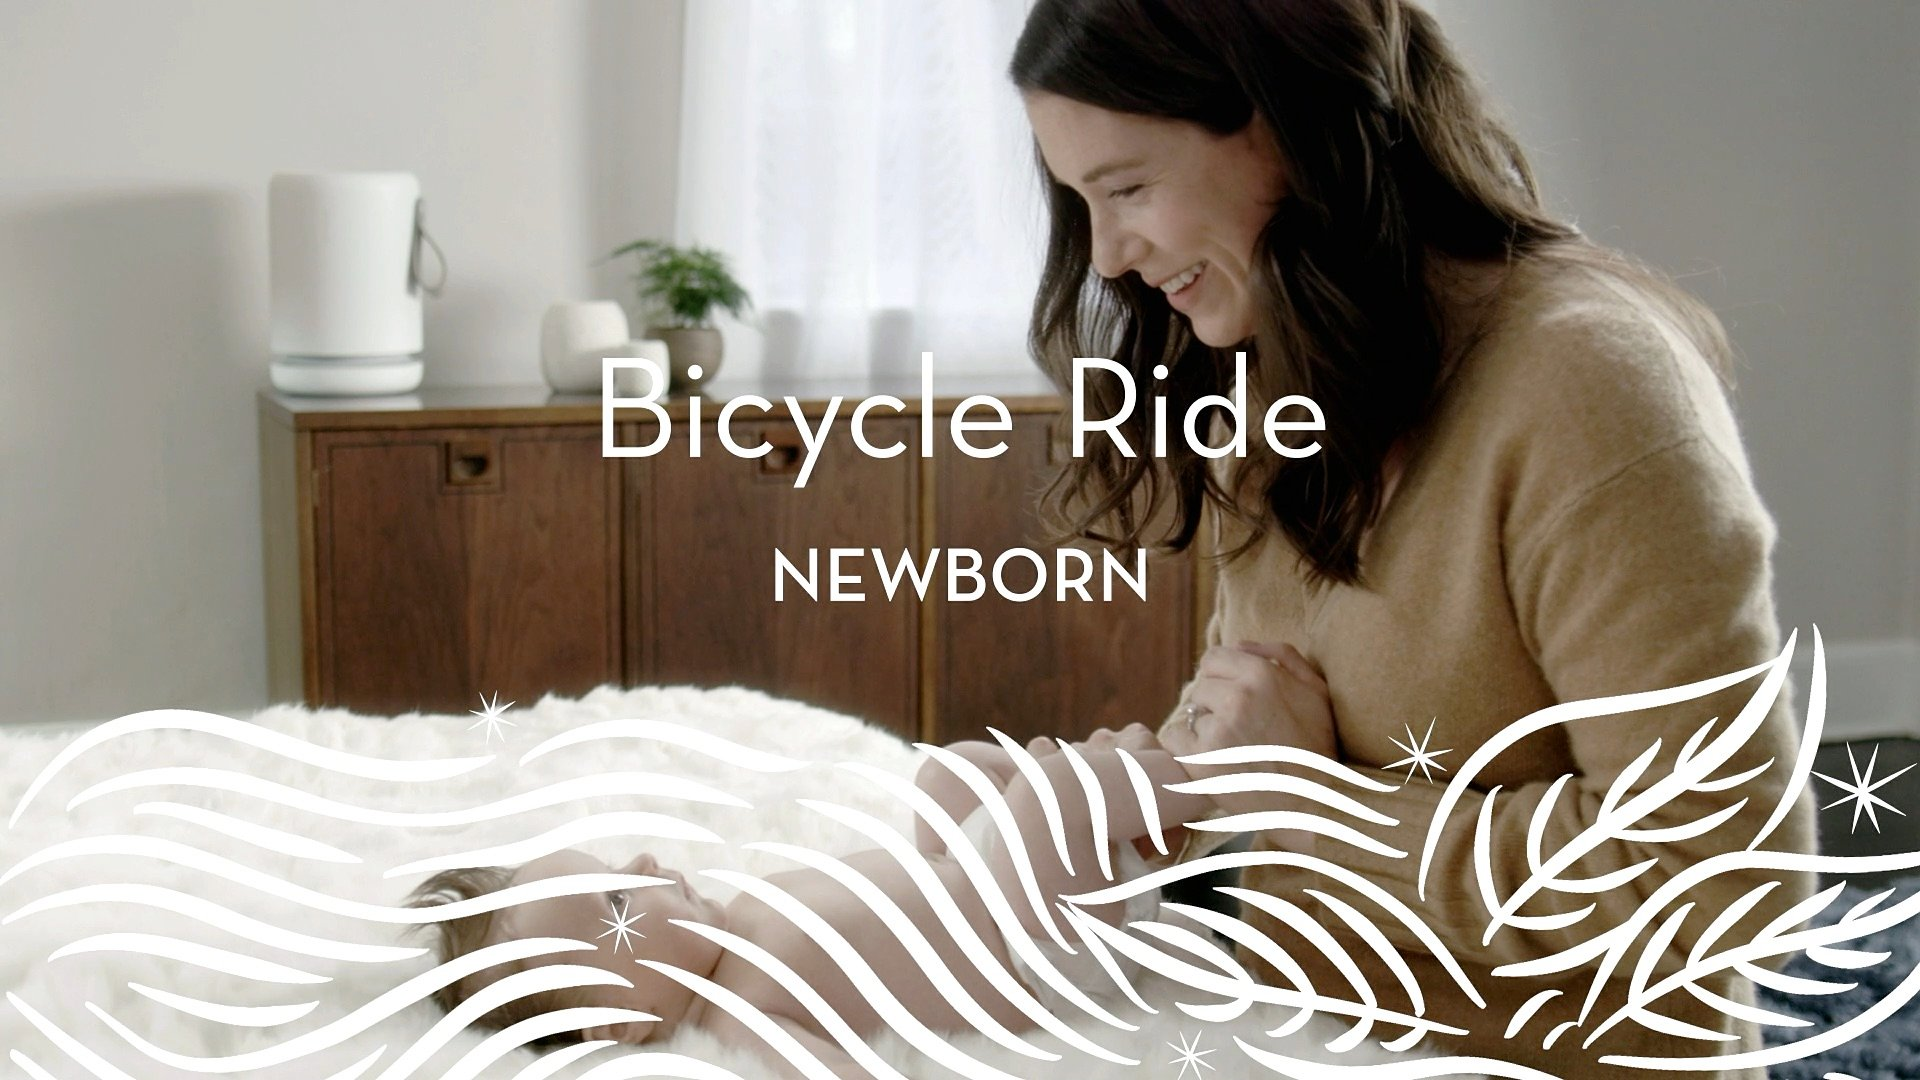 Newborn | Bicycle Ride